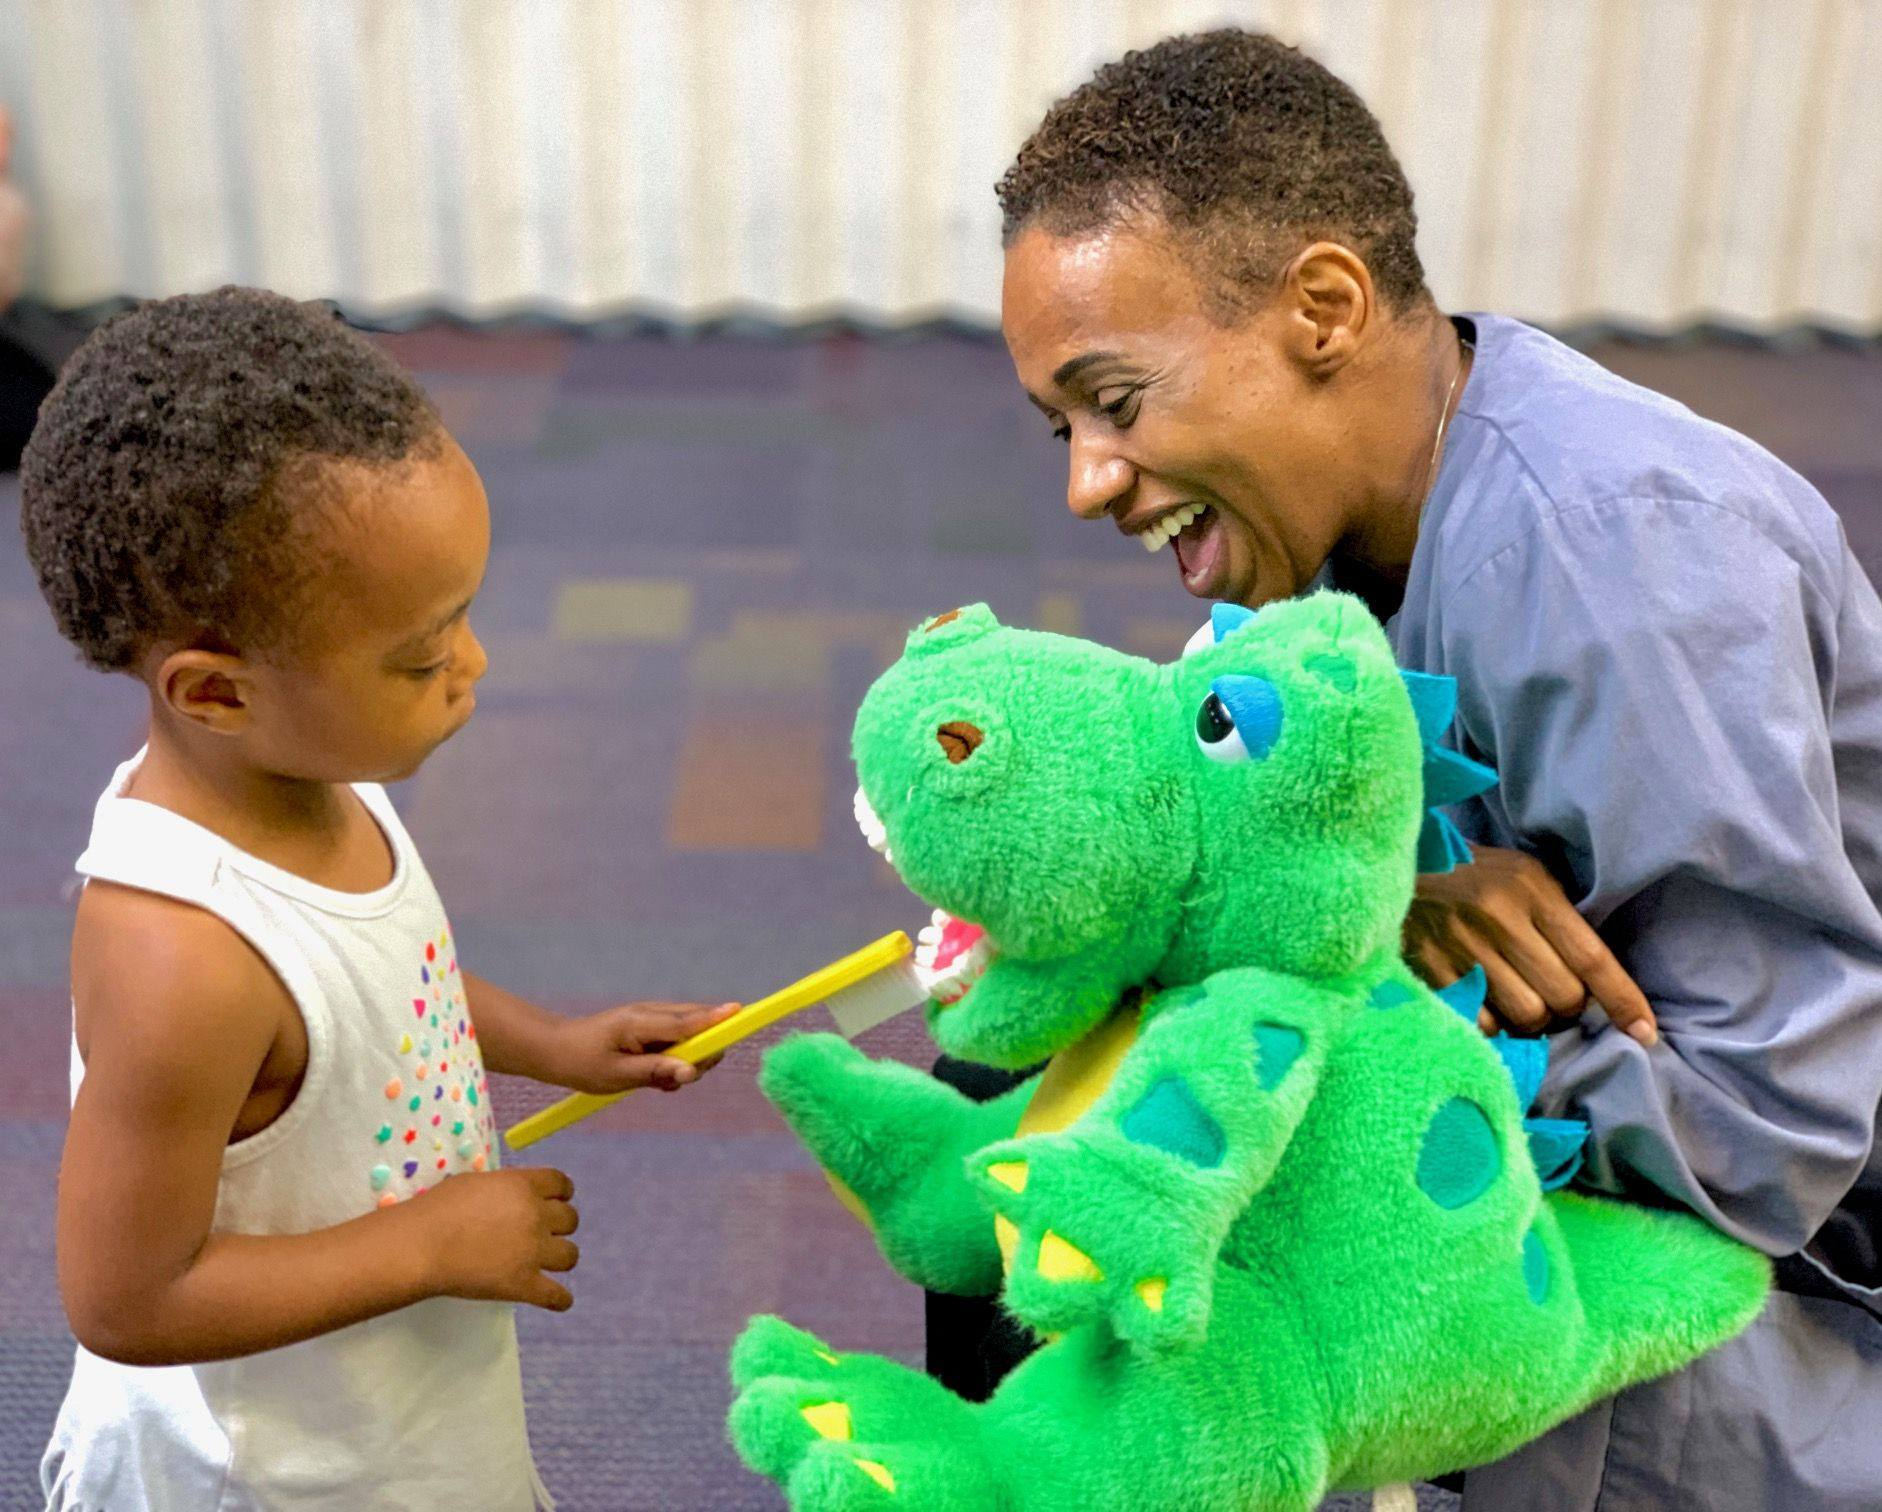 little kid brushing puppets teeth with staff member